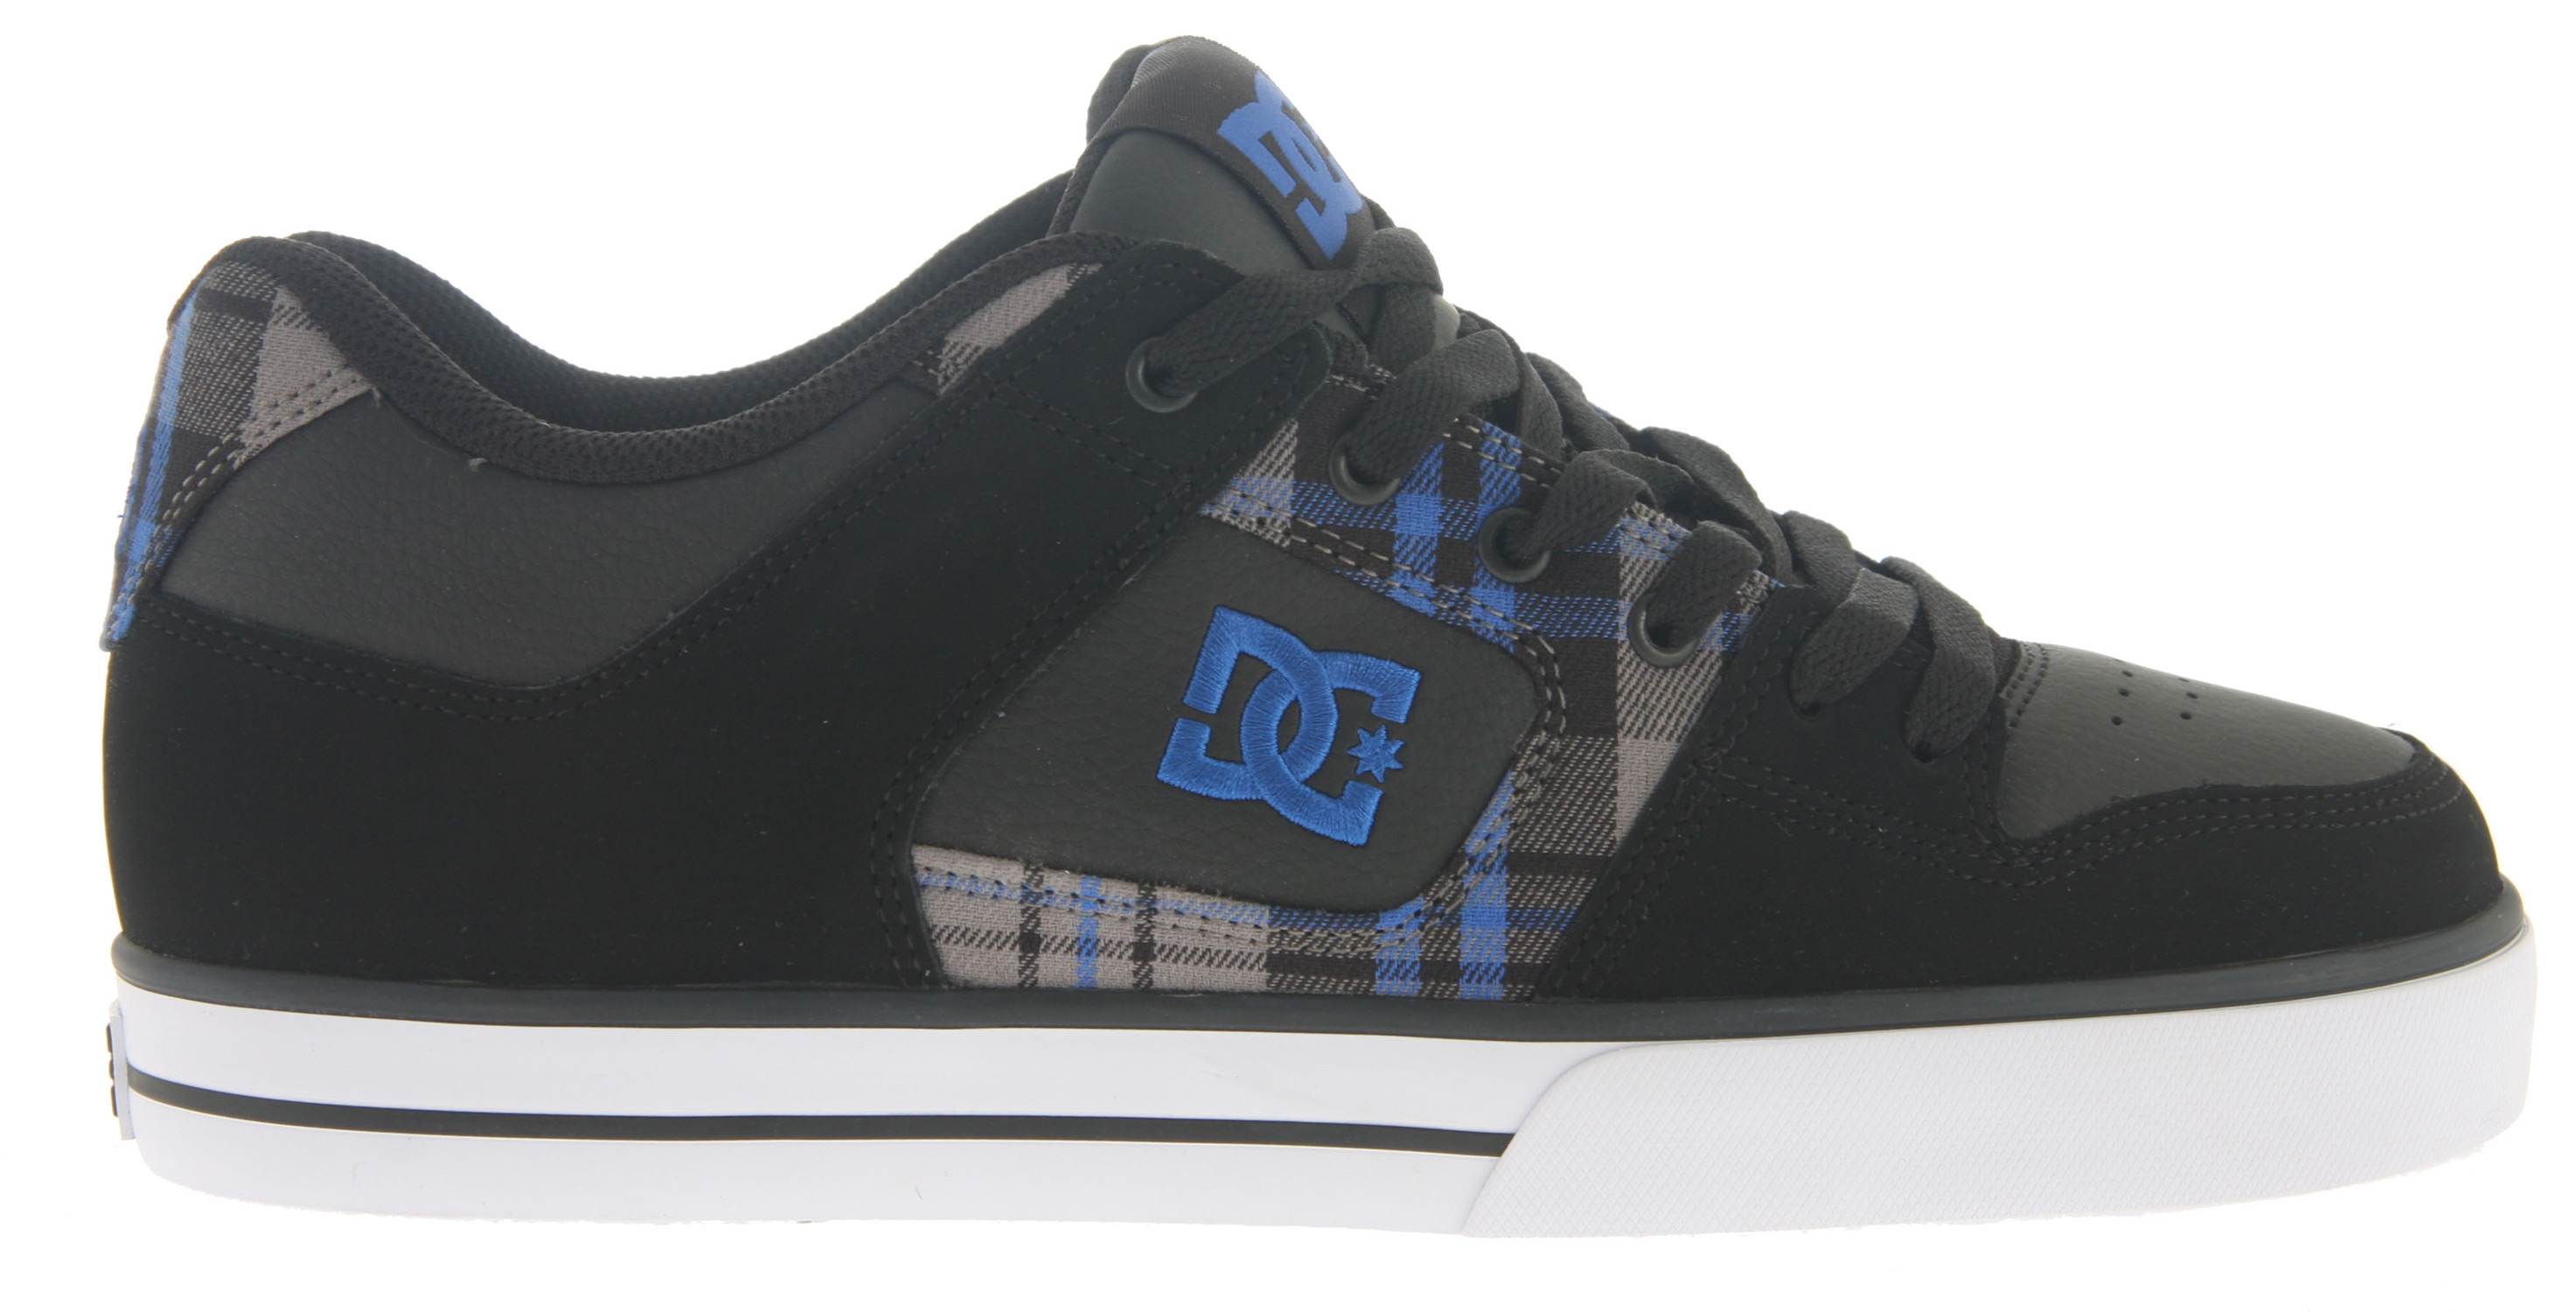 Skateboard Key Features of the DC Pure XE Skate Shoes: Heavy duty suede upper Soft resilient action leather Eyelets on medial side Metal eyelets and lace locks Foam padded tongue and collar Innovative DGT rubber bottom design for enhanced board control, feel, and durability Rubber toe wrap - $64.95